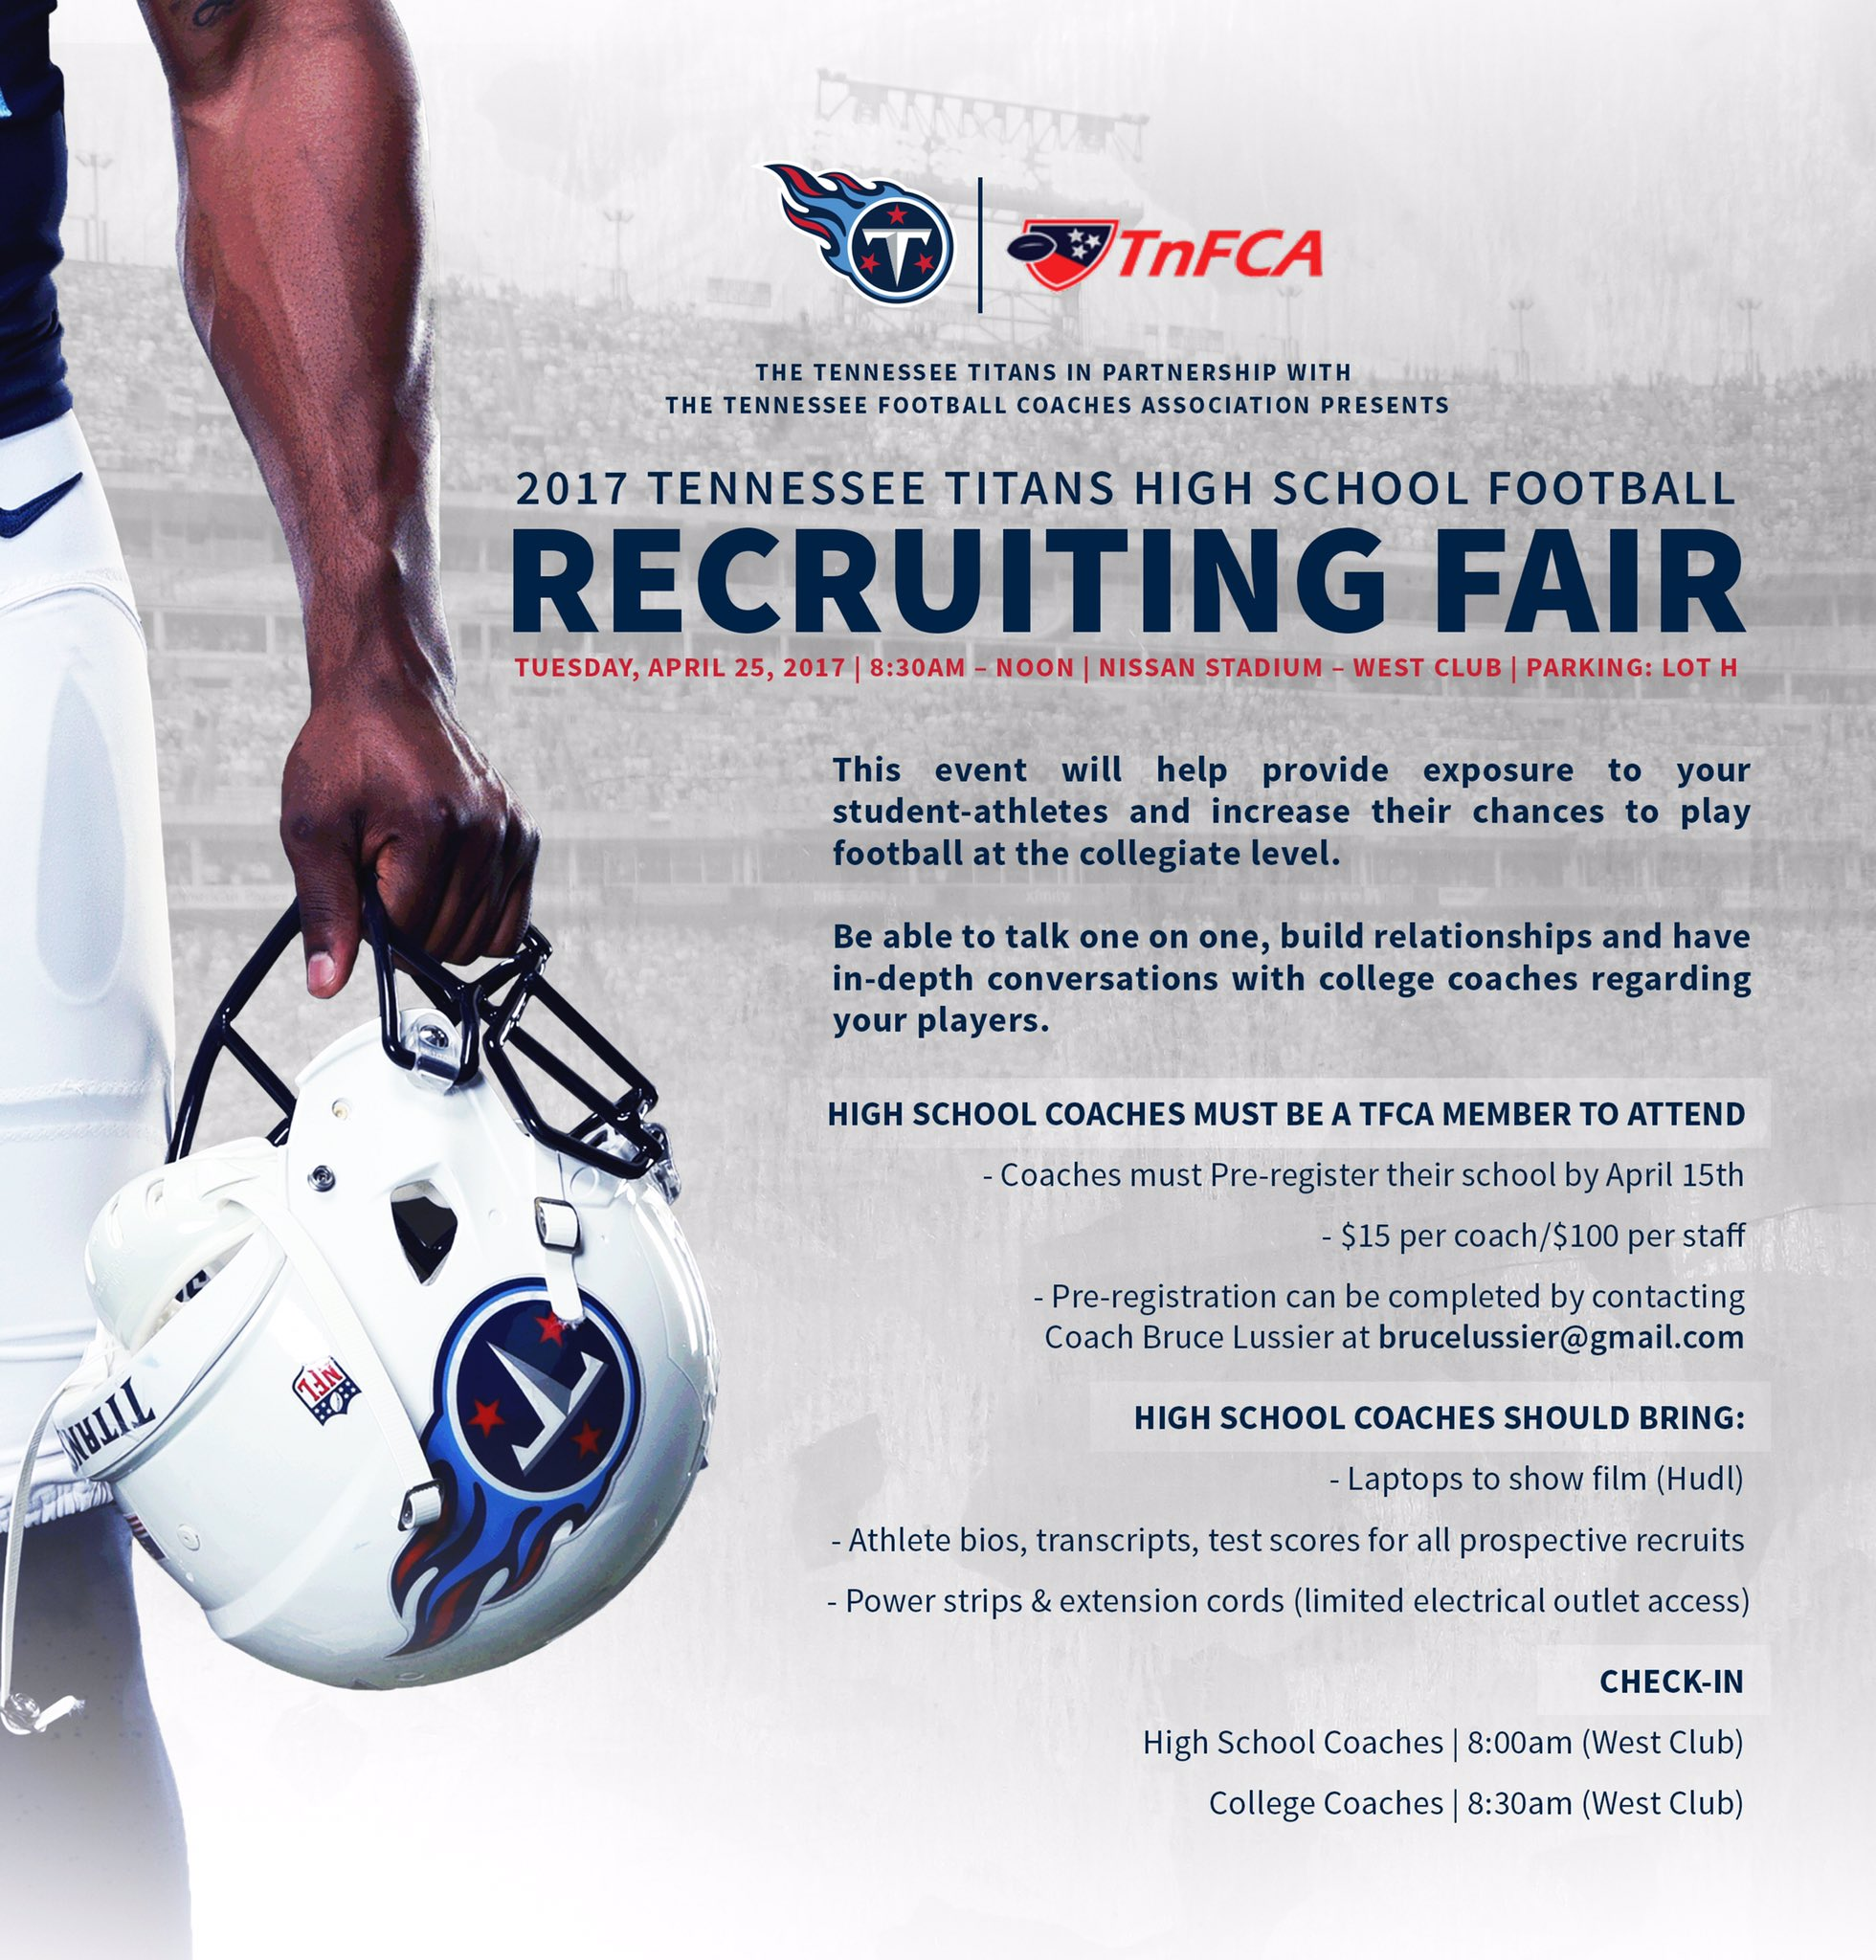 Tnfca On Twitter The 2017 Tnfca Recruiting Fair Is Right Around